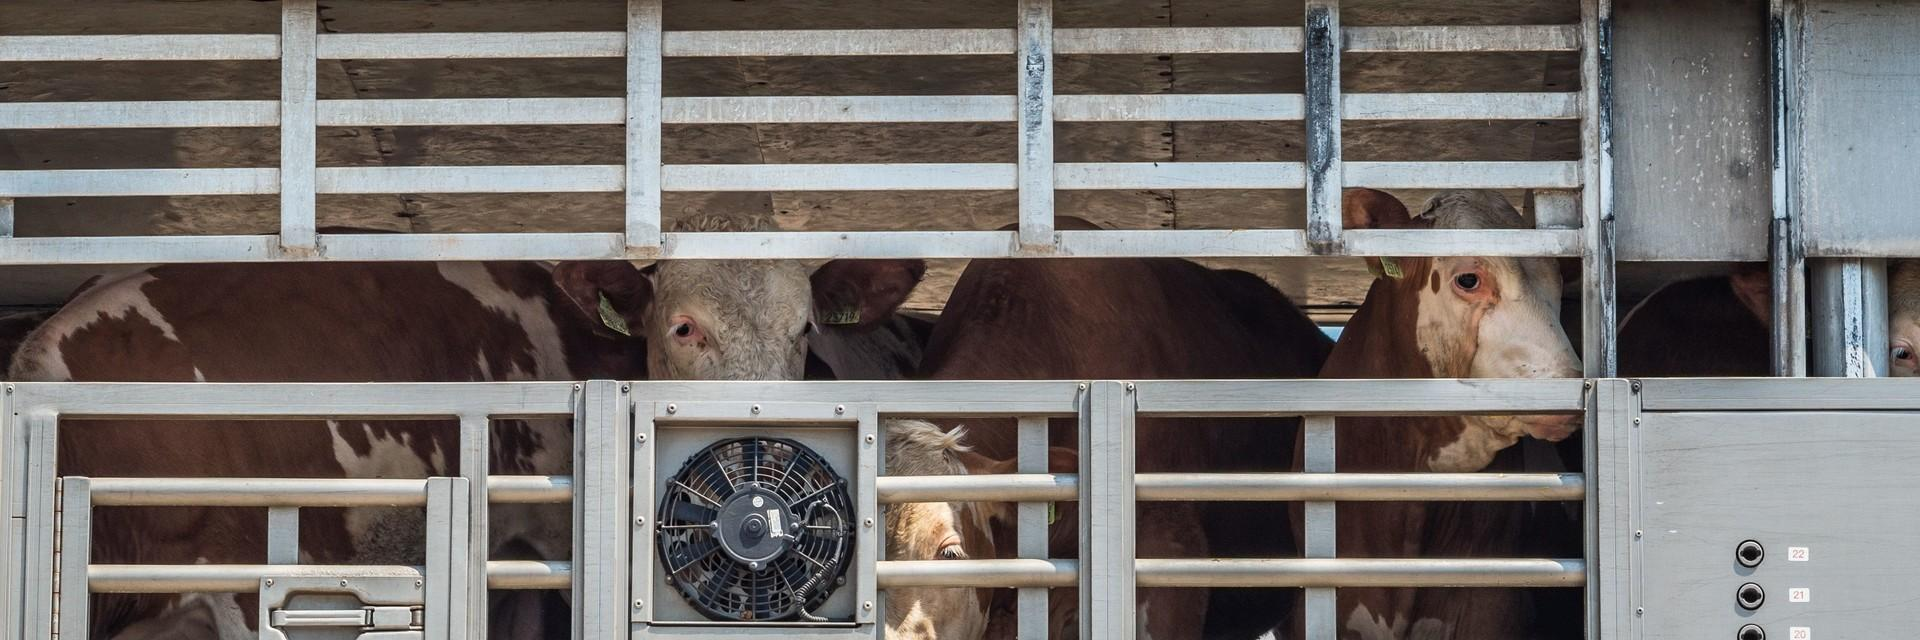 Cattle on a truck